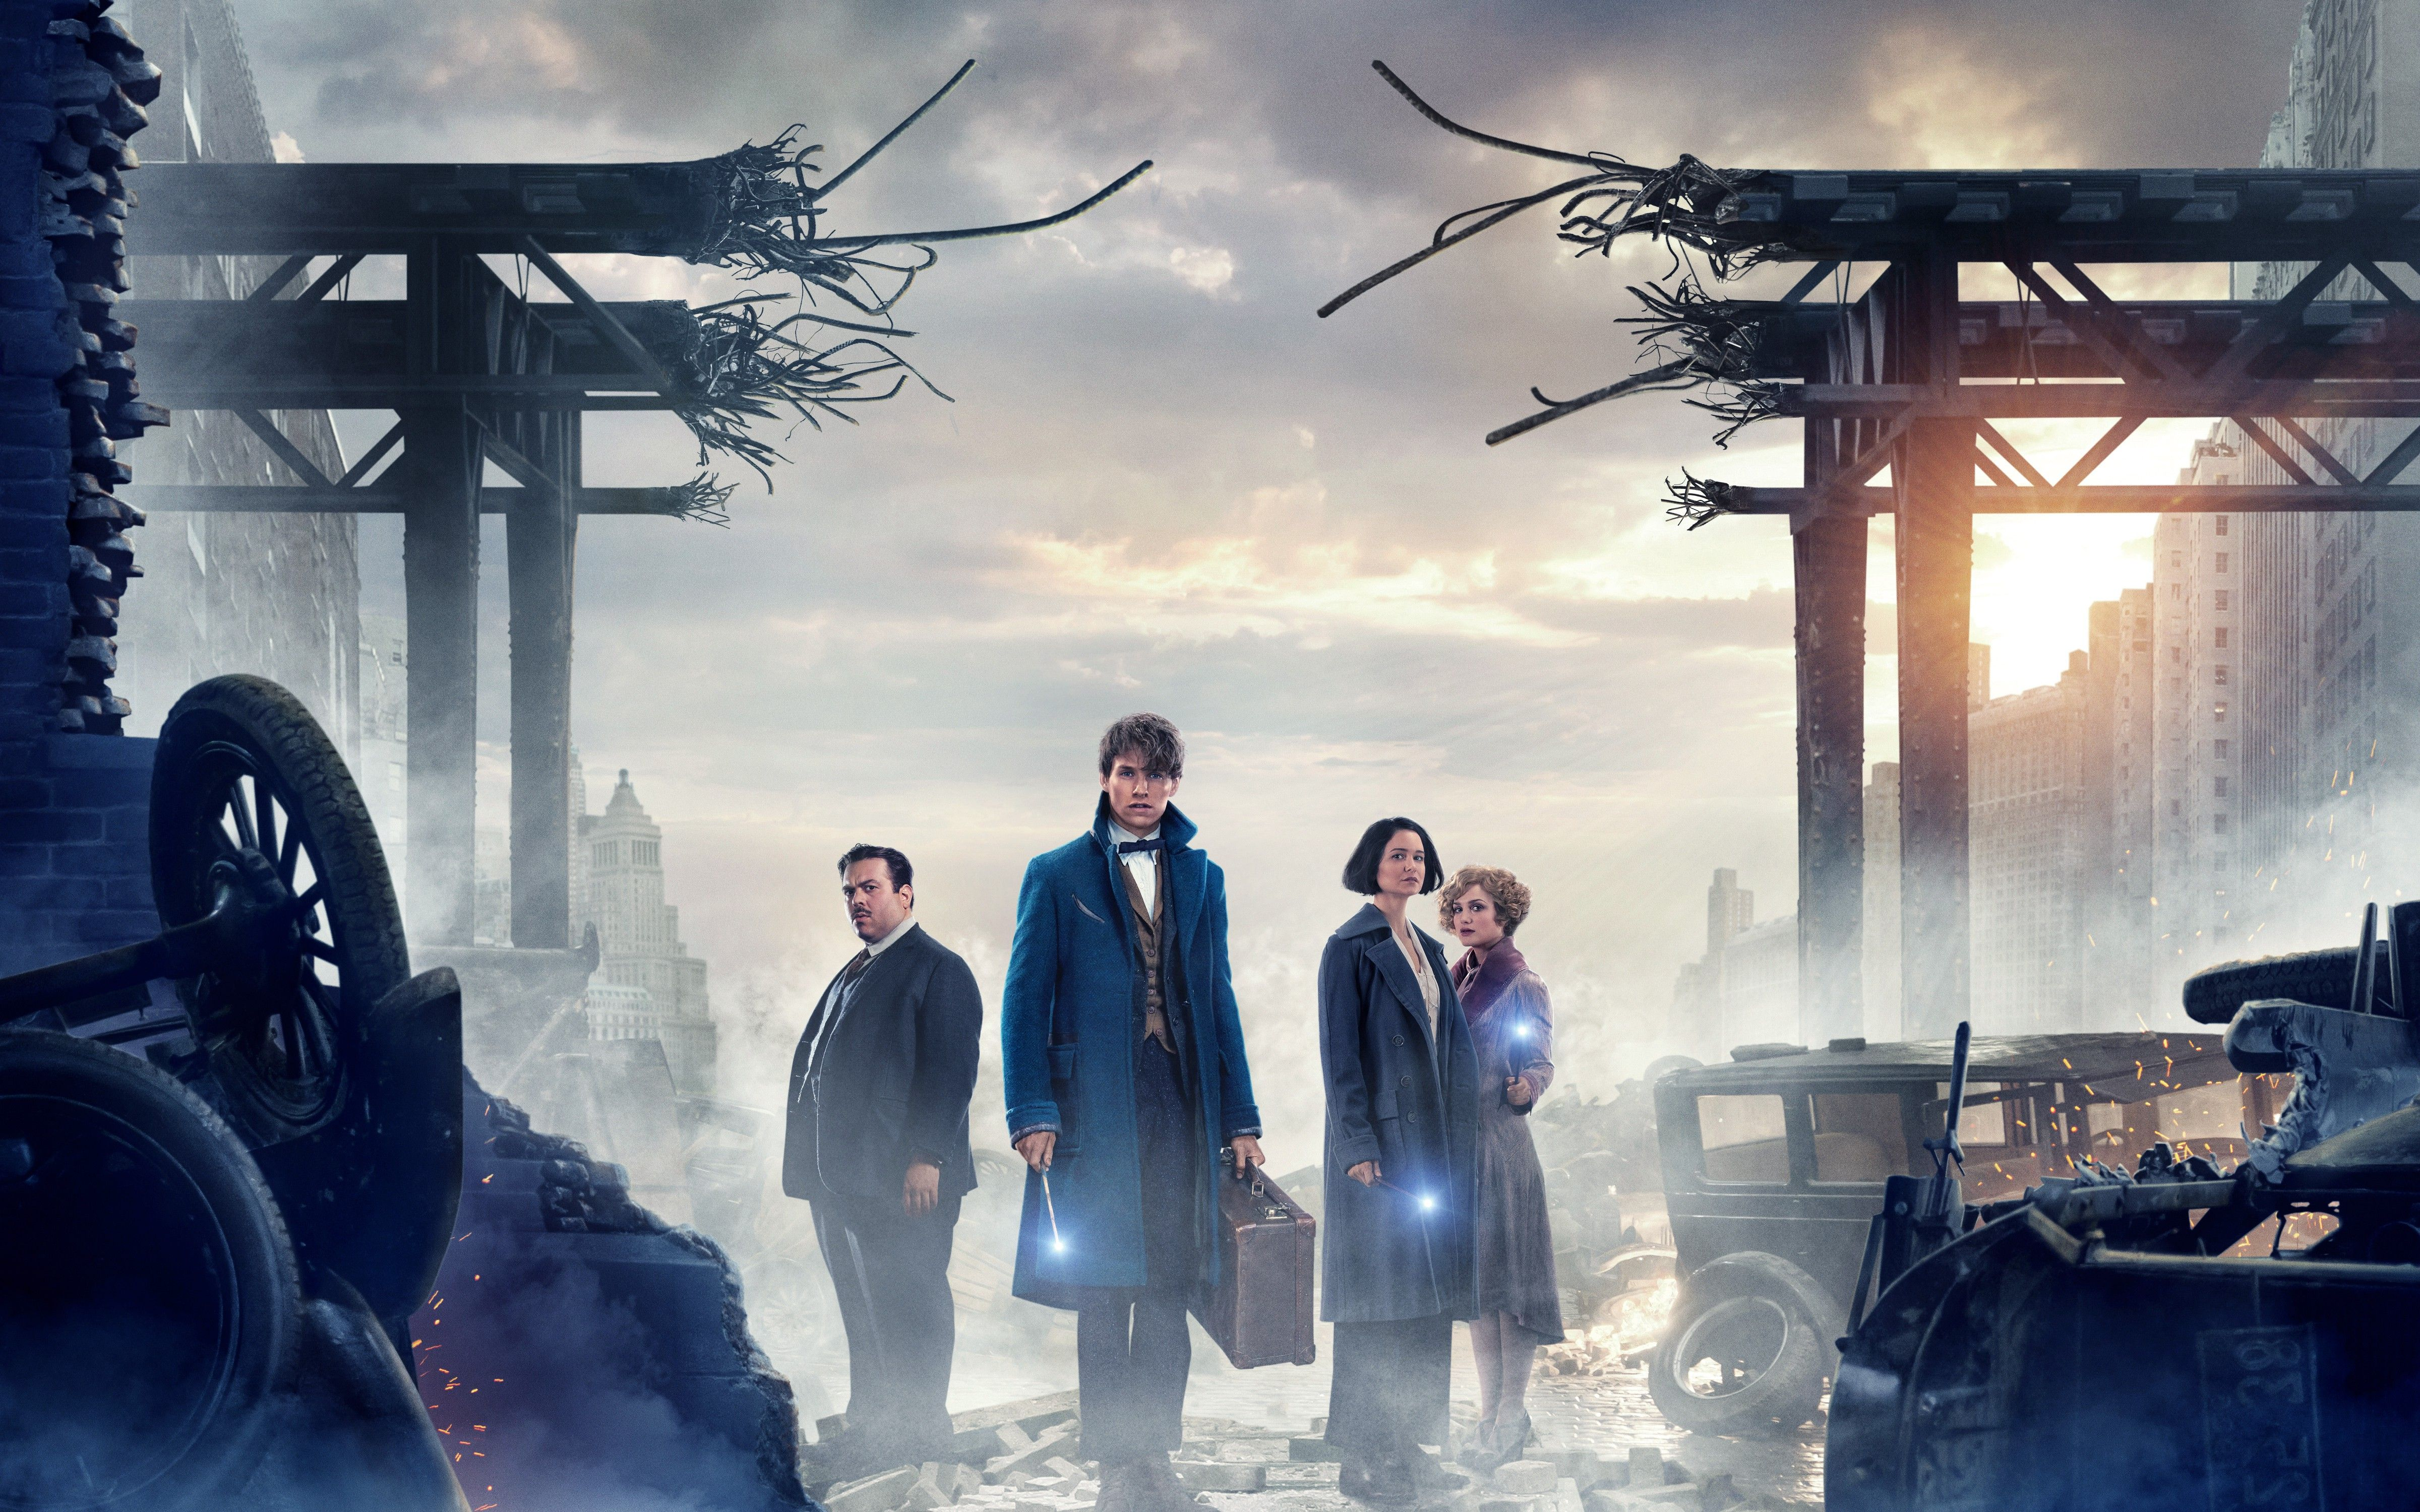 Pin by Lauren Olivia on Fantastic Beasts and Where to Find Them 4800x3000